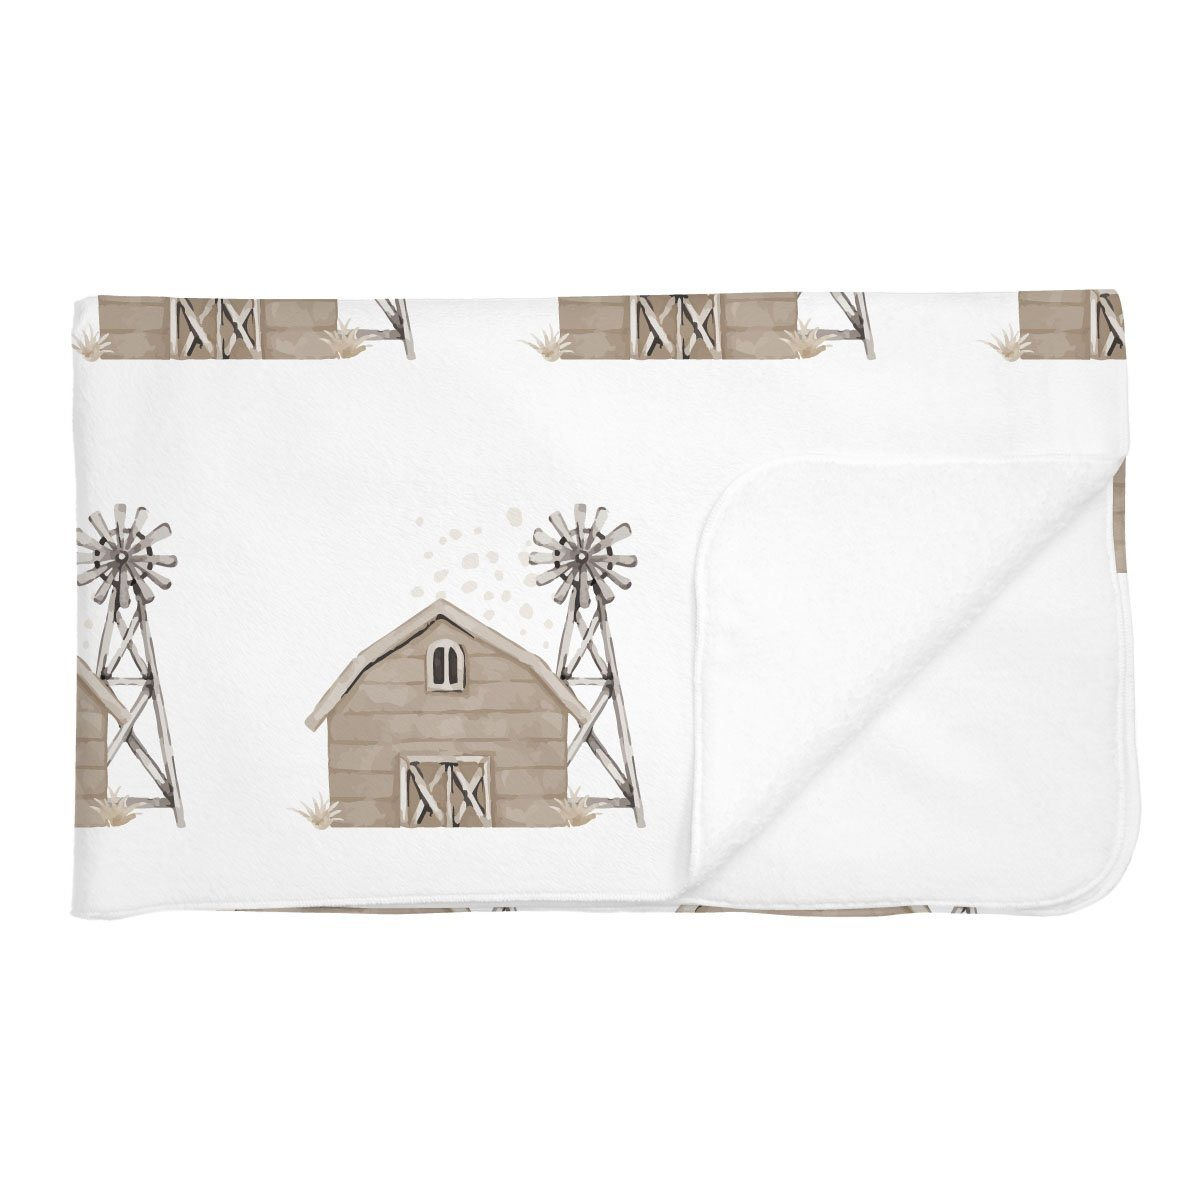 Bennett's Modern Farmhouse | Adult Size Blanket